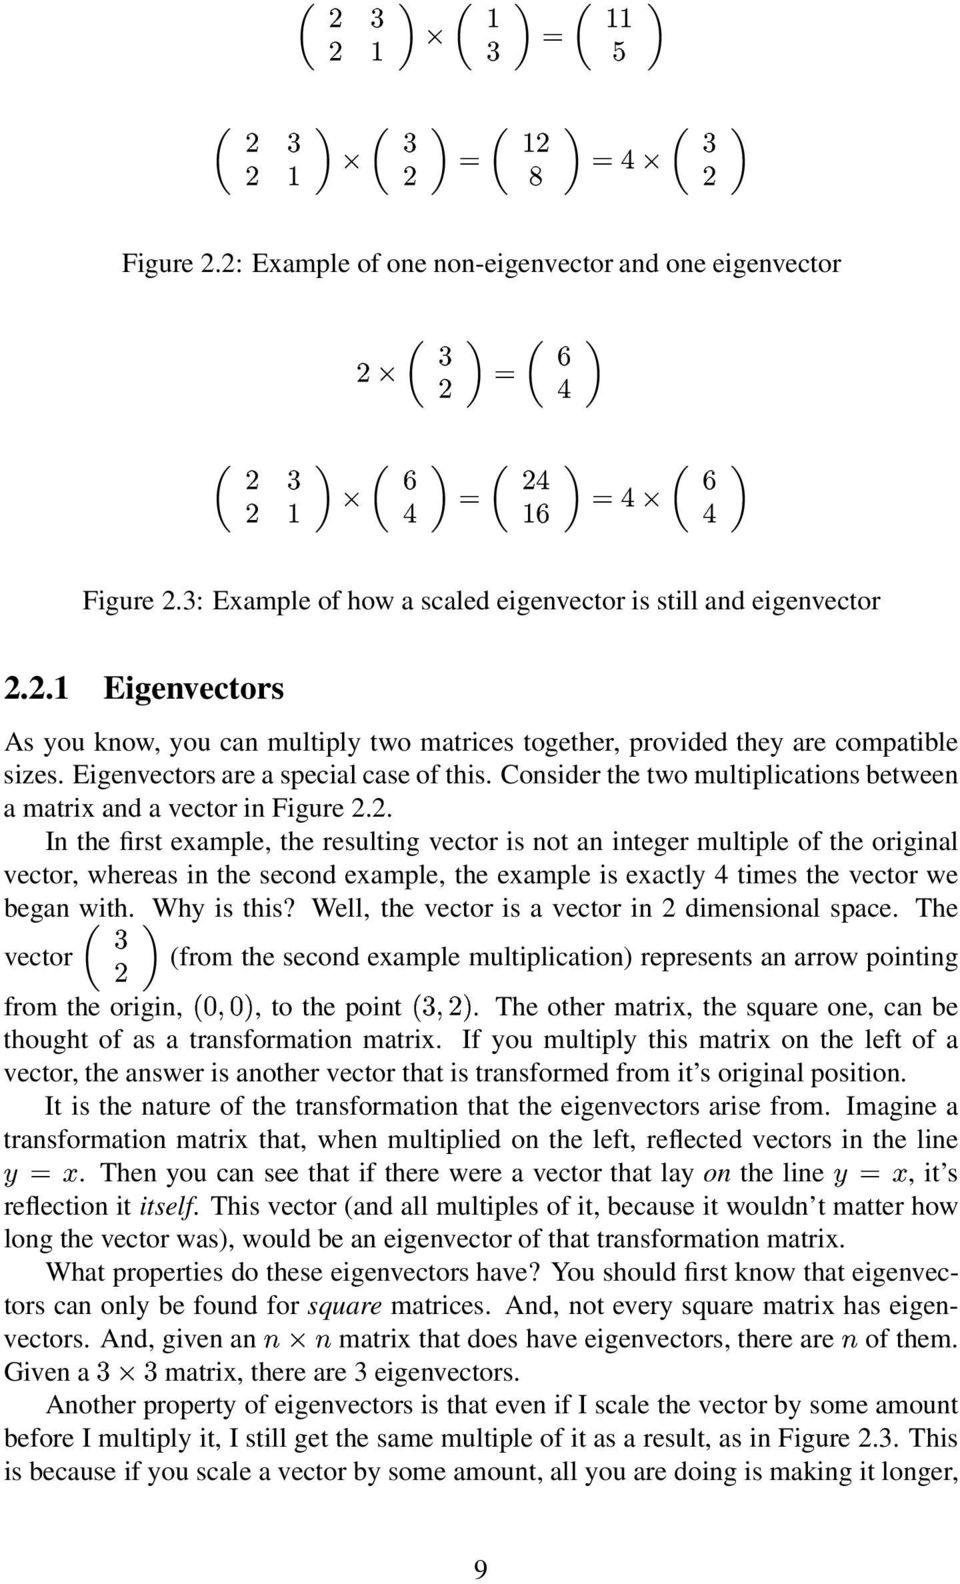 2. In the first example, the resulting vector is not an integer multiple of the original vector, whereas in the second example, the example is exactly 4 times the vector we began with. Why is this?